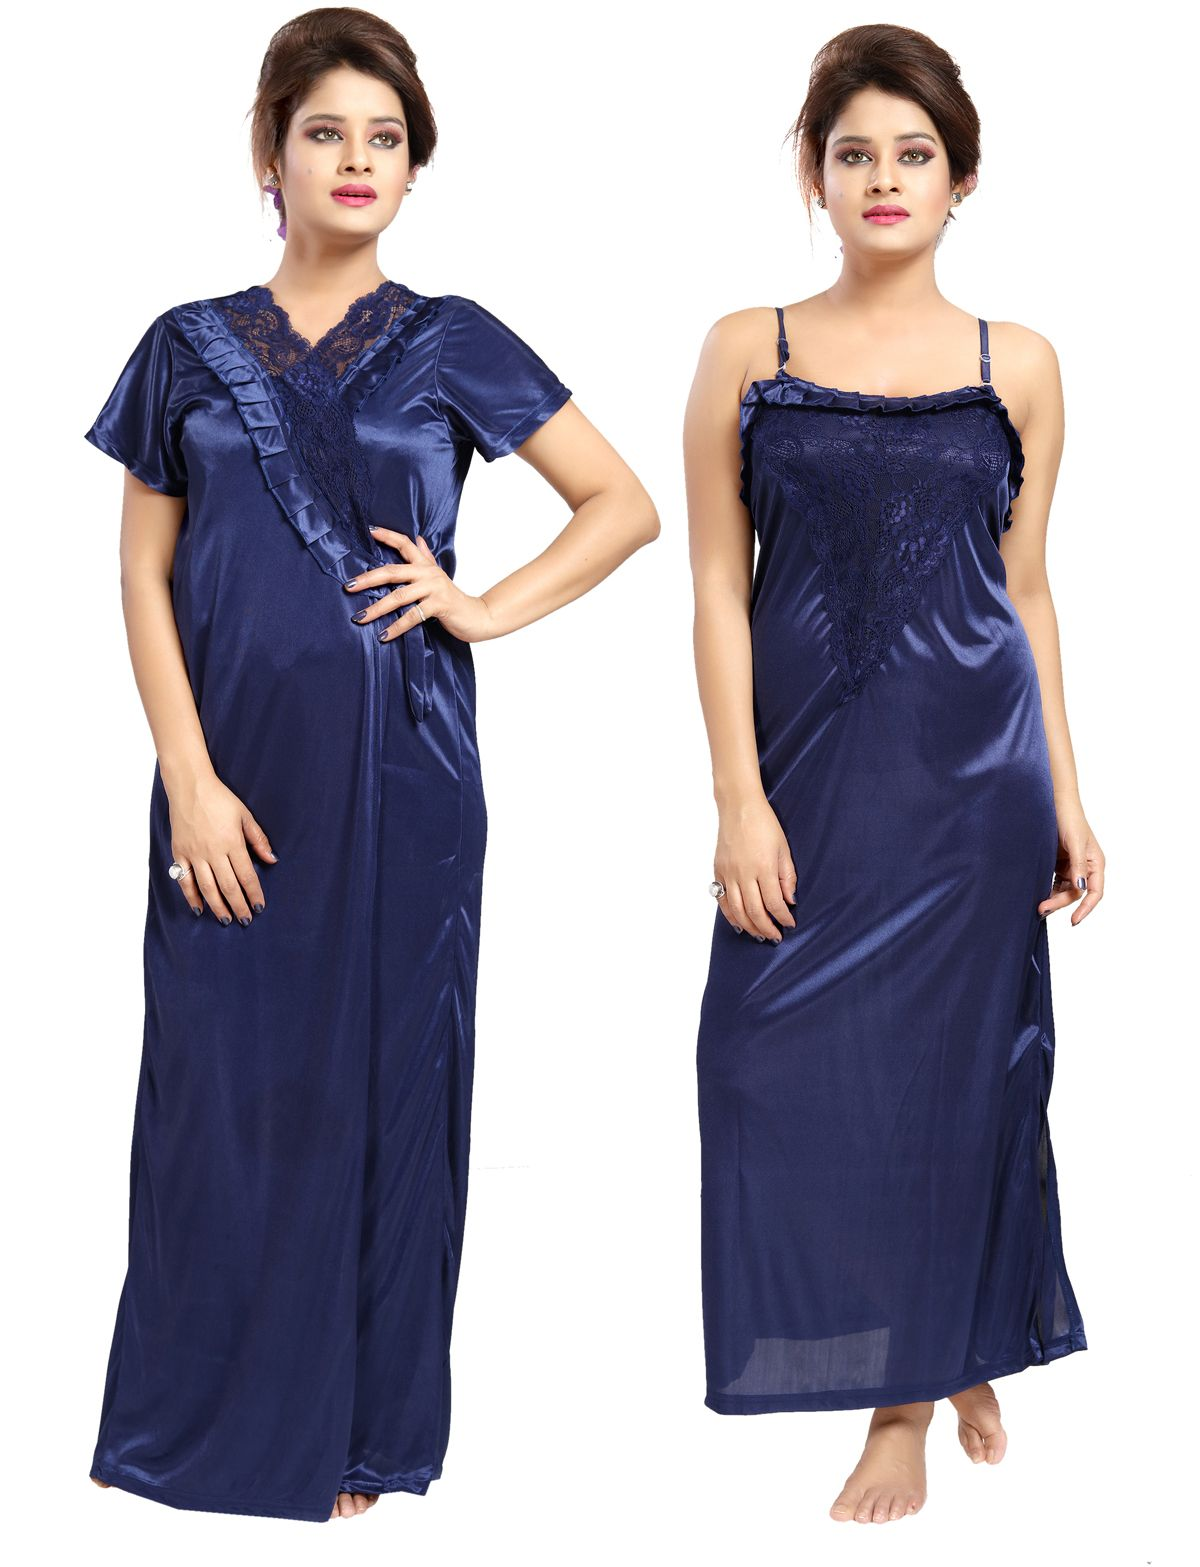 Be You Satin Dark Blue Plain 2 pieces Nighty Set for Women  a76d50d85